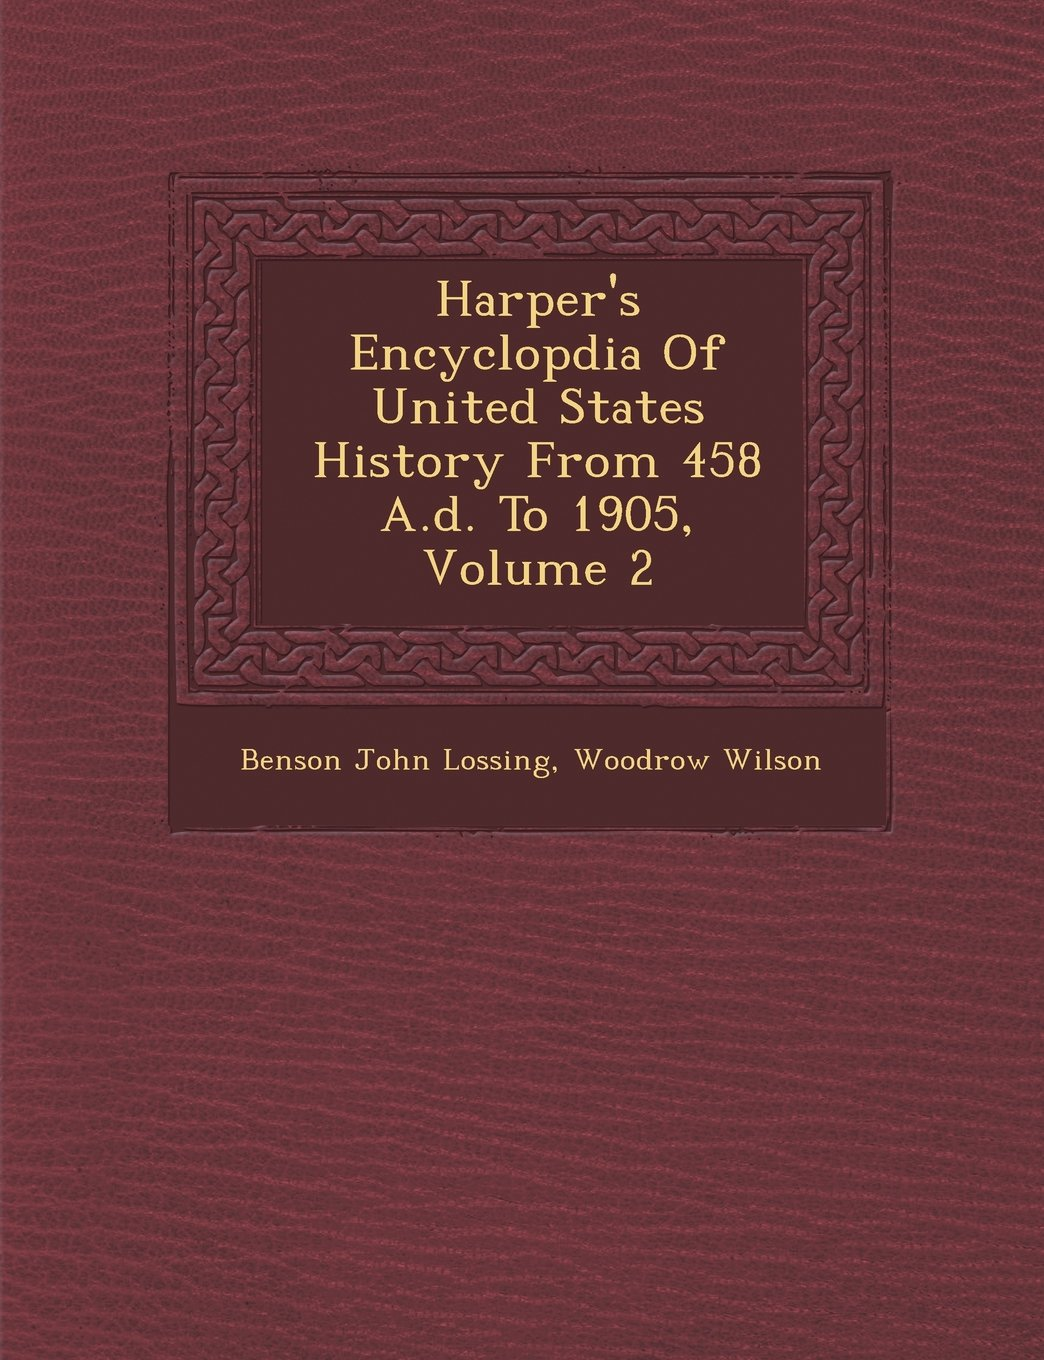 Download Harper's Encyclopdia Of United States History From 458 A.d. To 1905, Volume 2 ebook